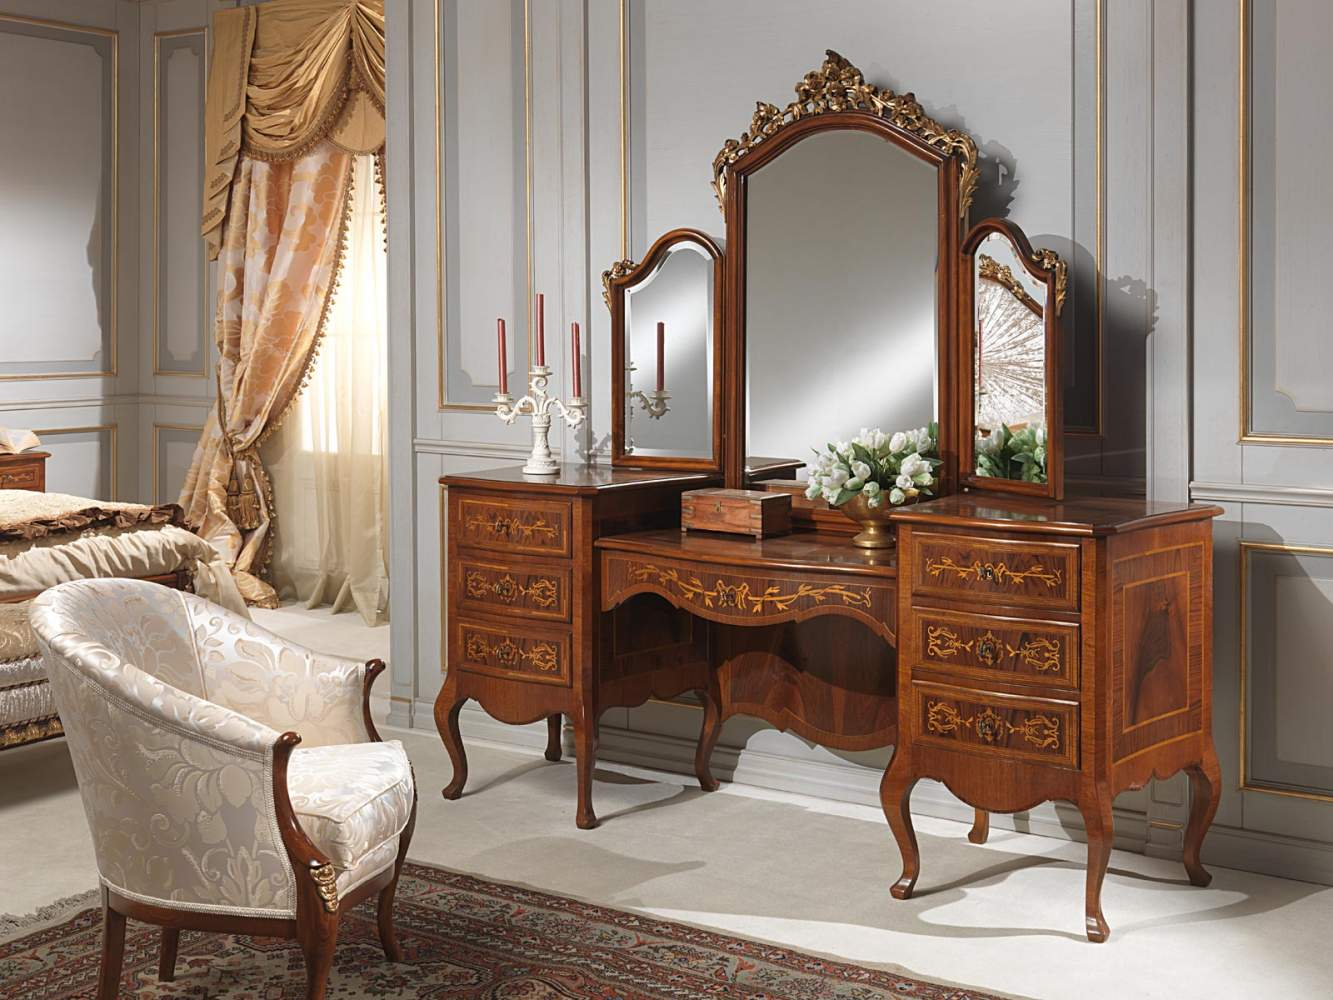 Classic Louvre Bedroom, Dressing Table With Mirror